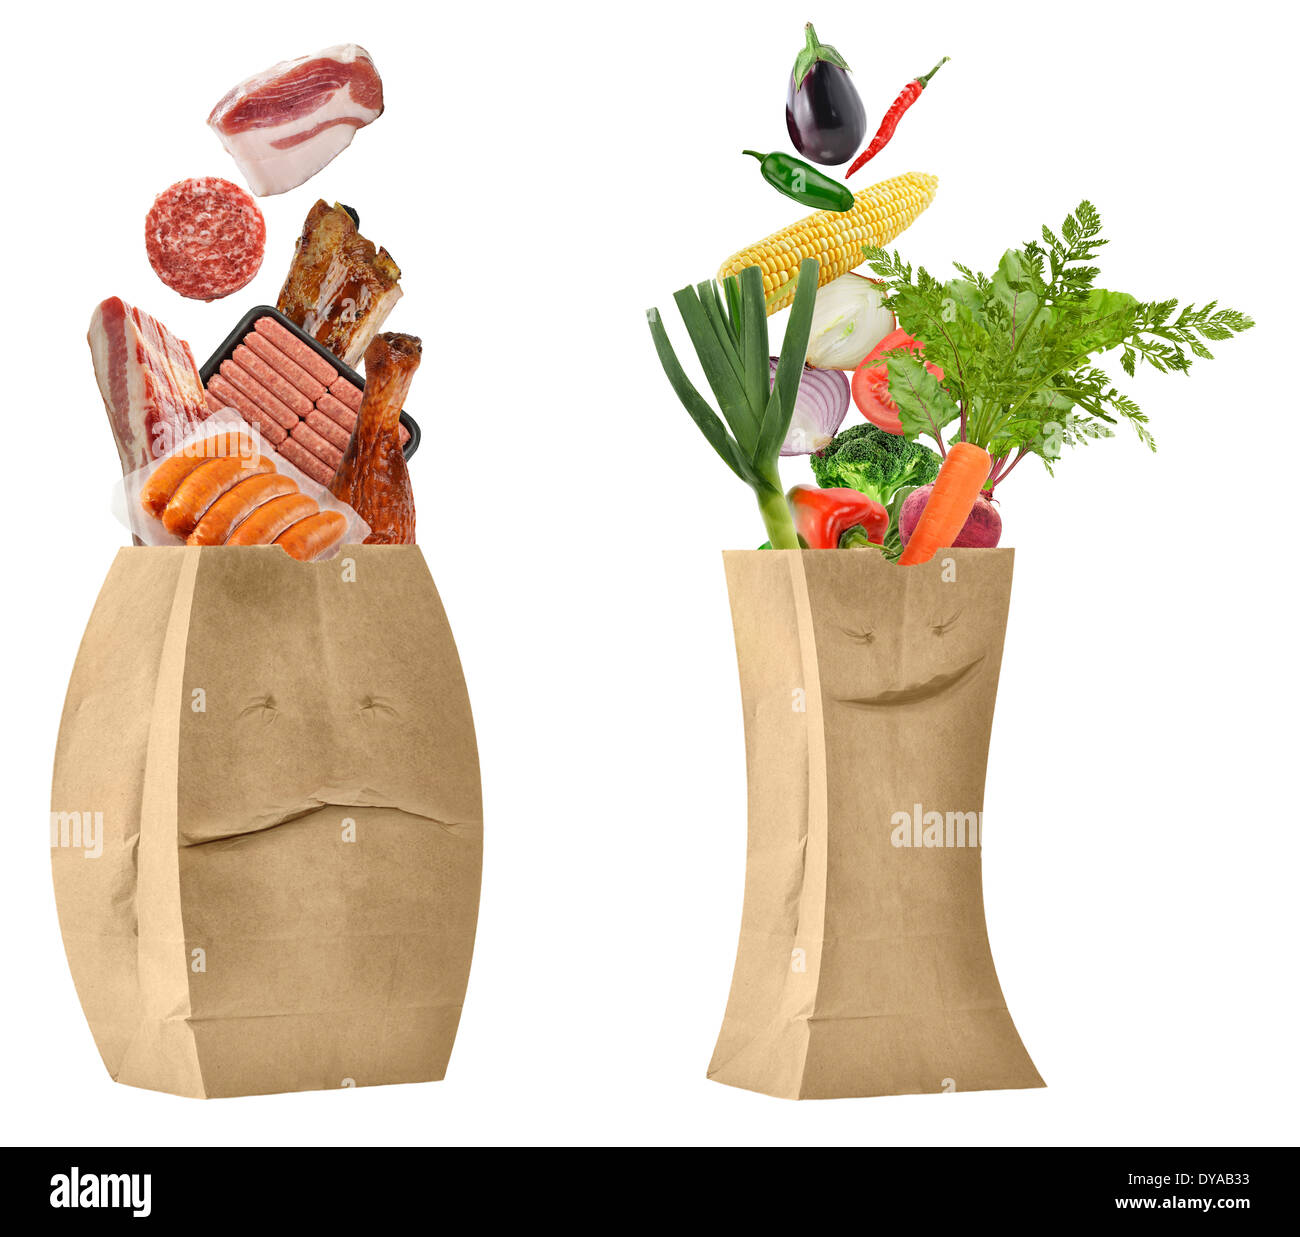 Healthy And Unhealthy Food Concept - Stock Image